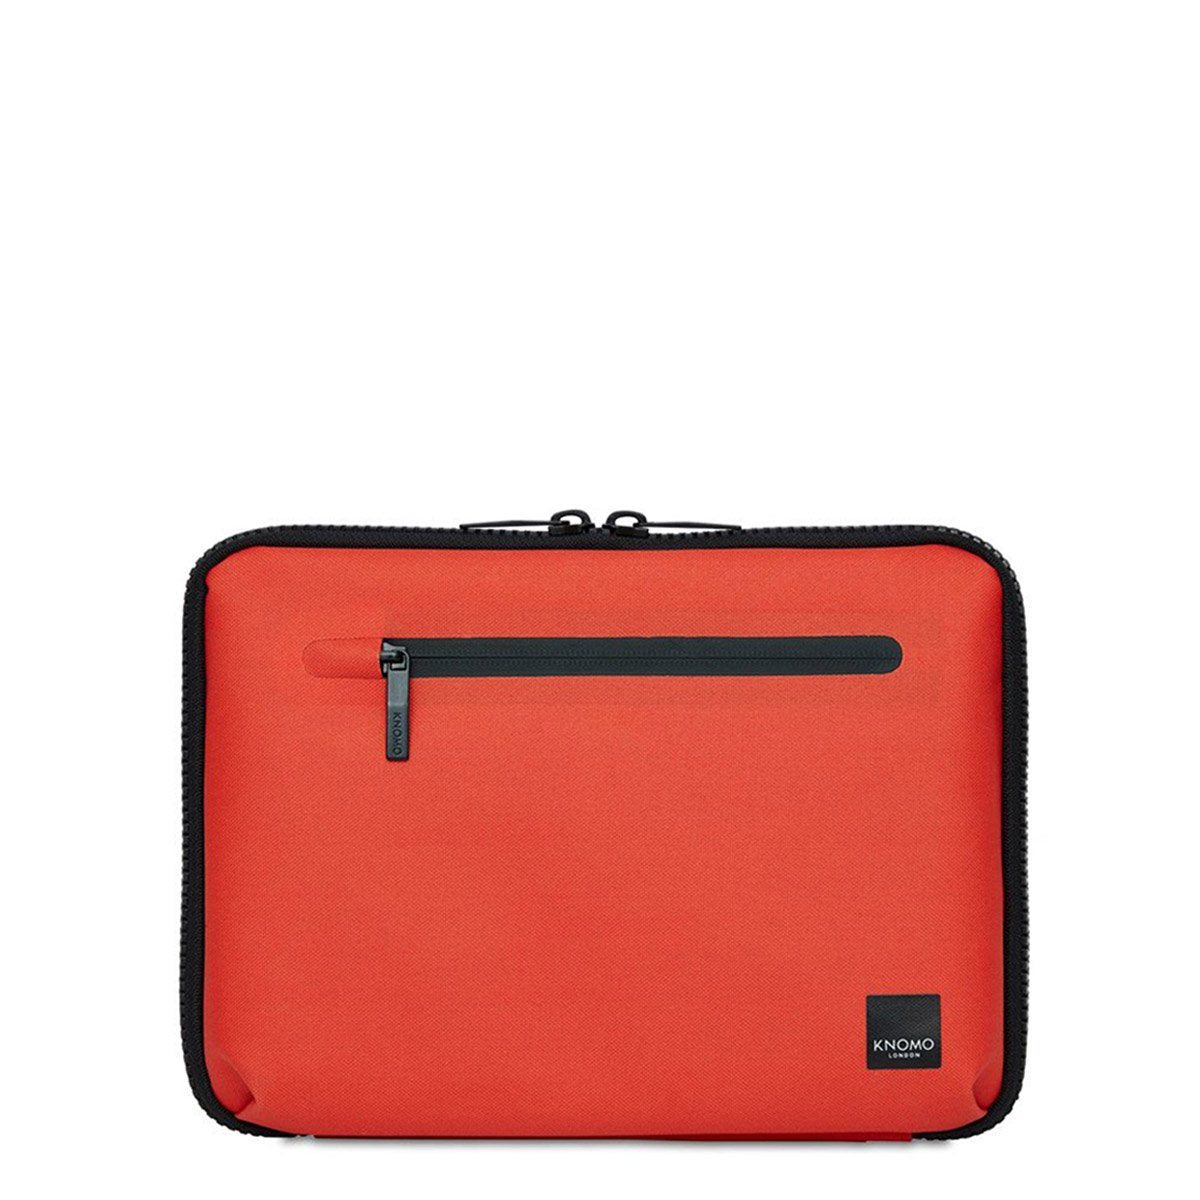 "Thames Knomad Organiser - 10.5"" - Flash Orange 